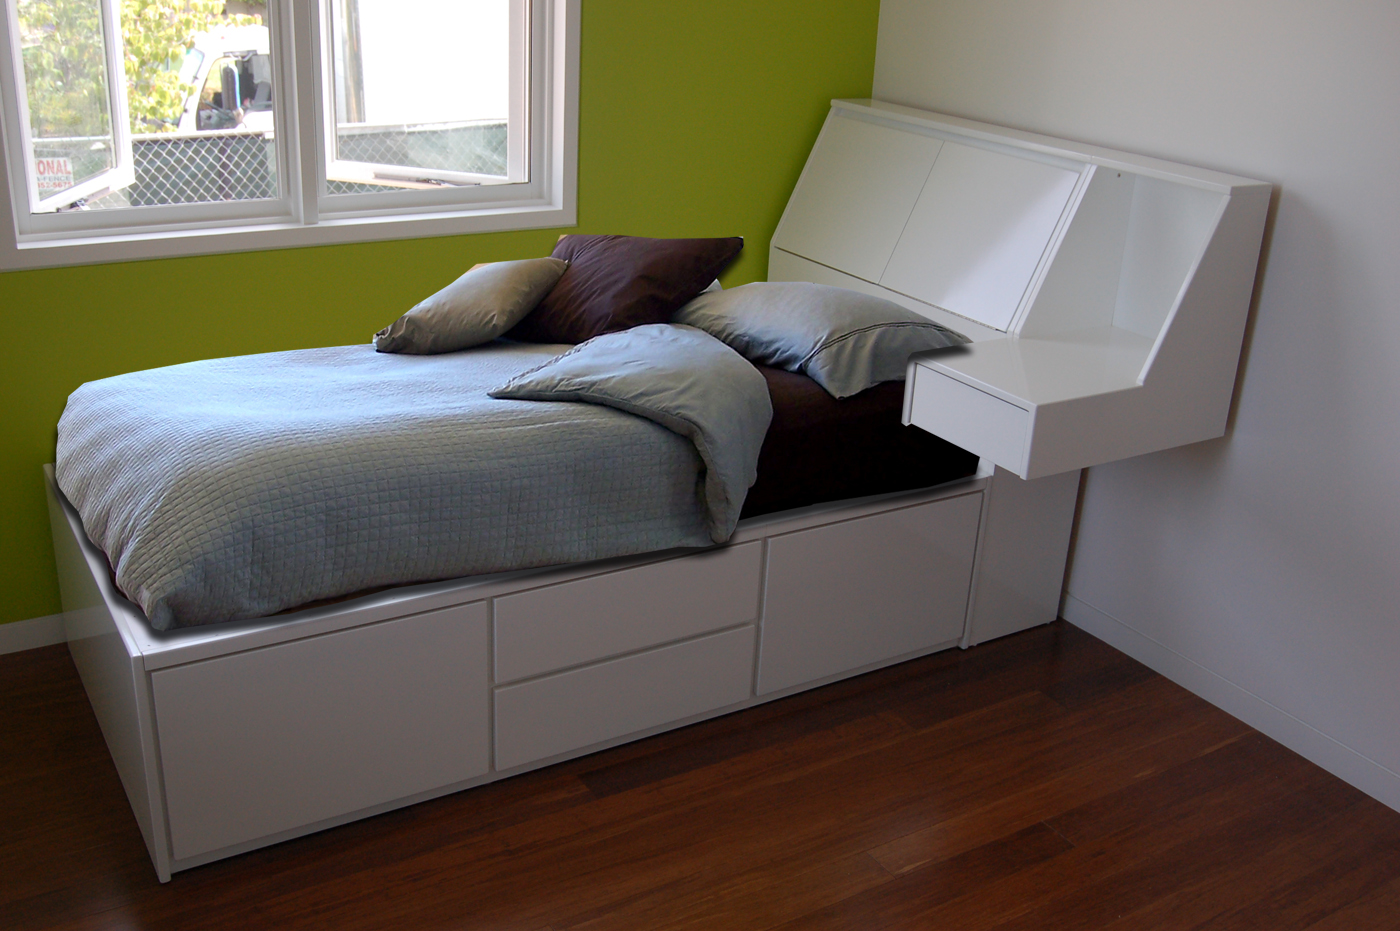 Renovate Platform Storage Bed Frame Royals Courage